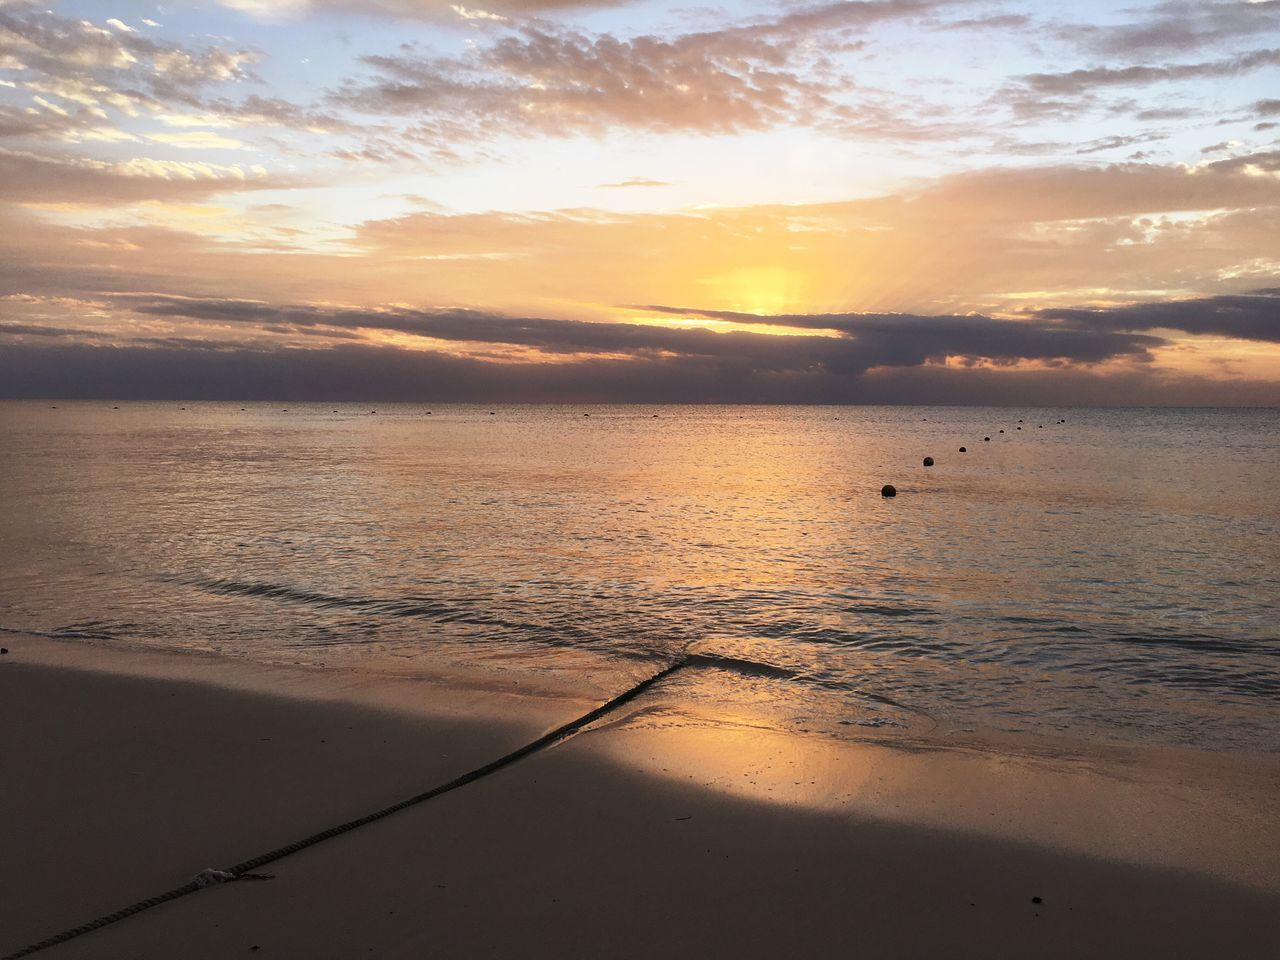 sunset, beauty in nature, sea, scenics, nature, water, orange color, sky, tranquil scene, beach, cloud - sky, sun, horizon over water, tranquility, no people, sunlight, outdoors, travel destinations, bird, day